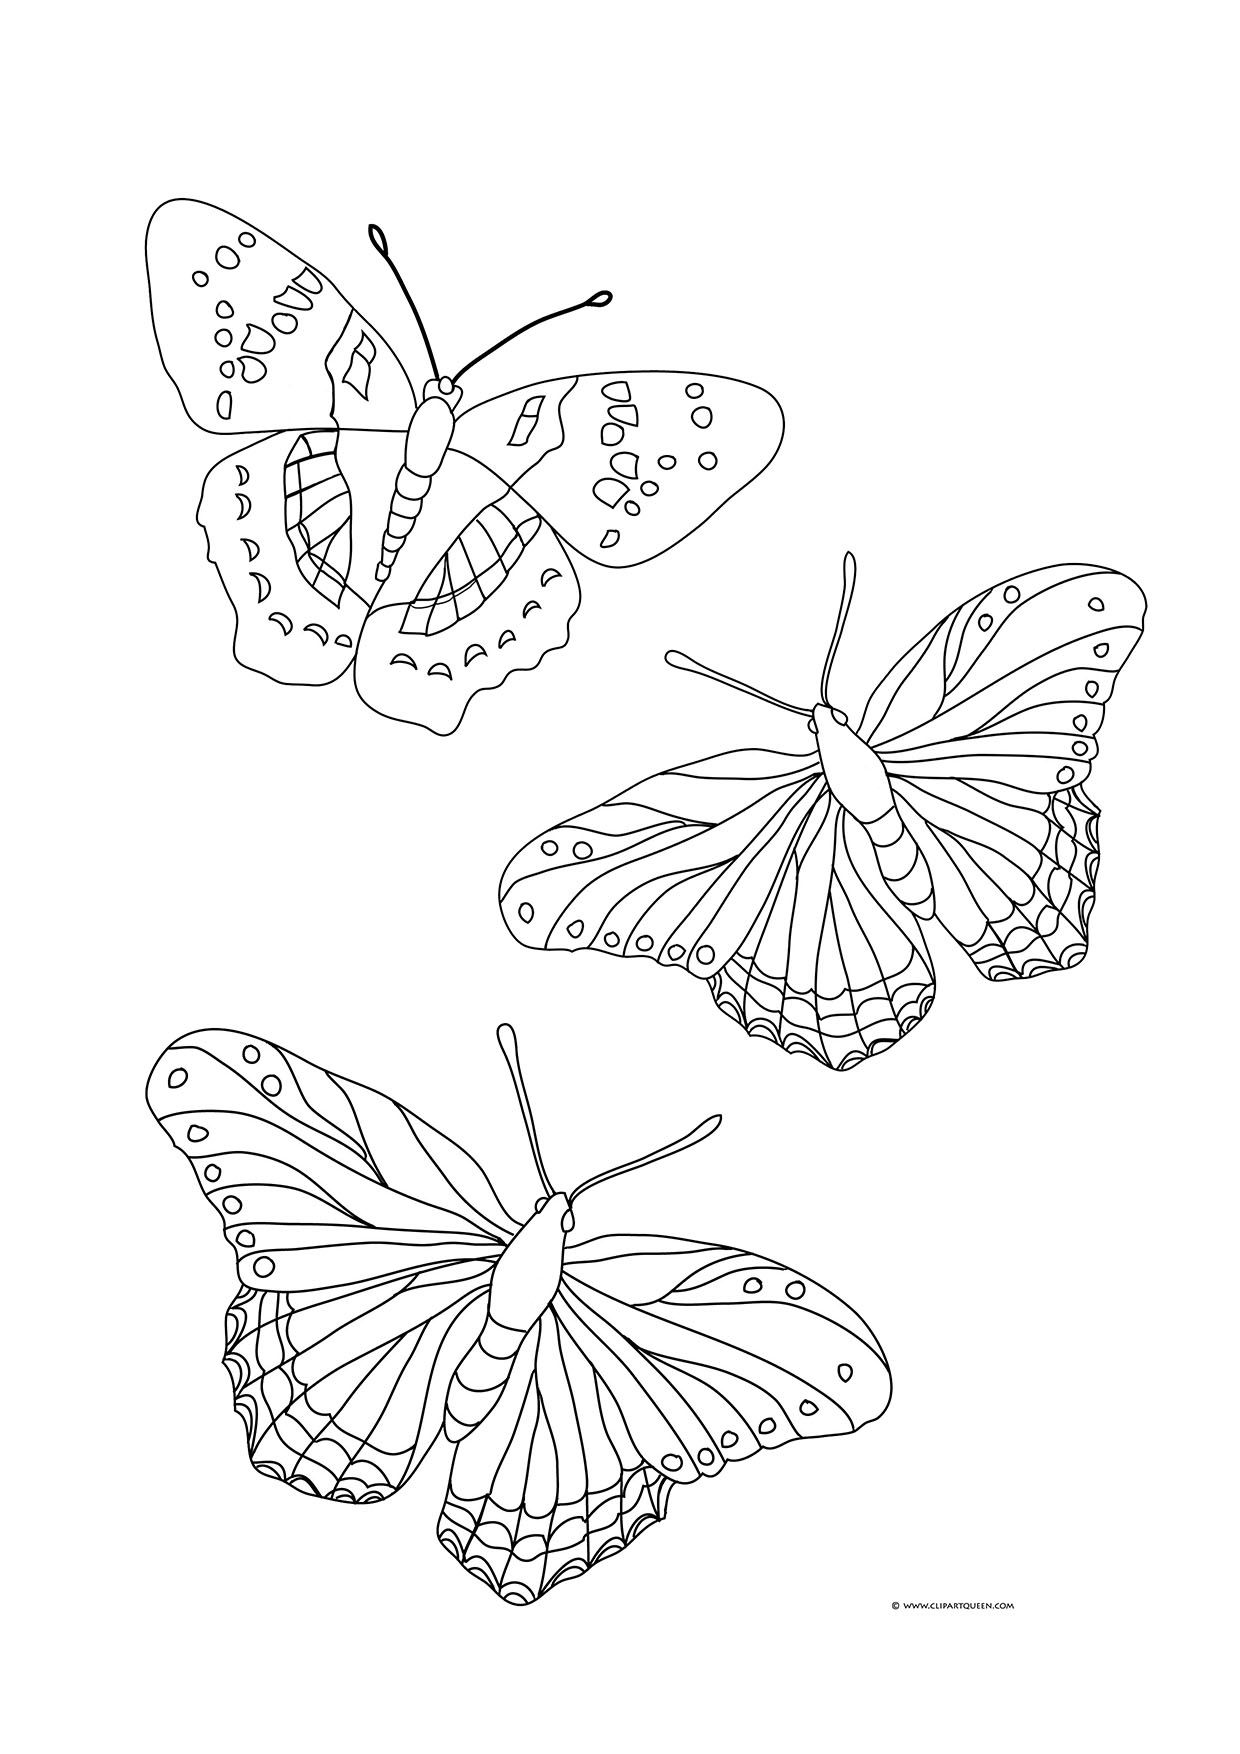 25 Amazing Photo Of Butterflies Coloring Pages Davemelillo Com Butterfly Coloring Page Free Coloring Pages Shape Coloring Pages [ 1754 x 1240 Pixel ]